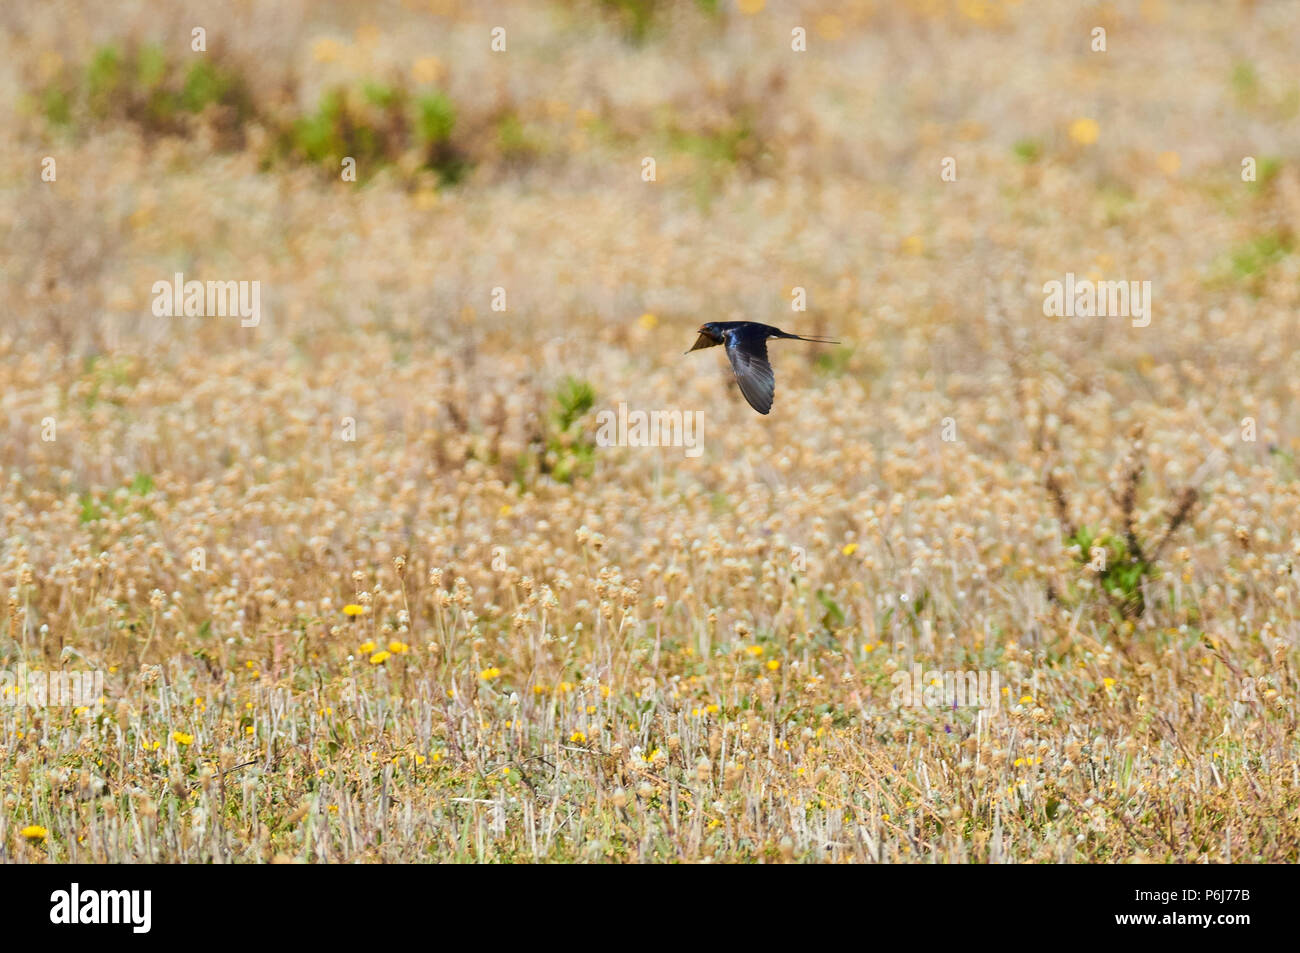 Barn swallow (Hirundo rustica) flying over a blooming grass field in Can Marroig in Ses Salines Natural Park (Formentera, Balearic islands, Spain) - Stock Image